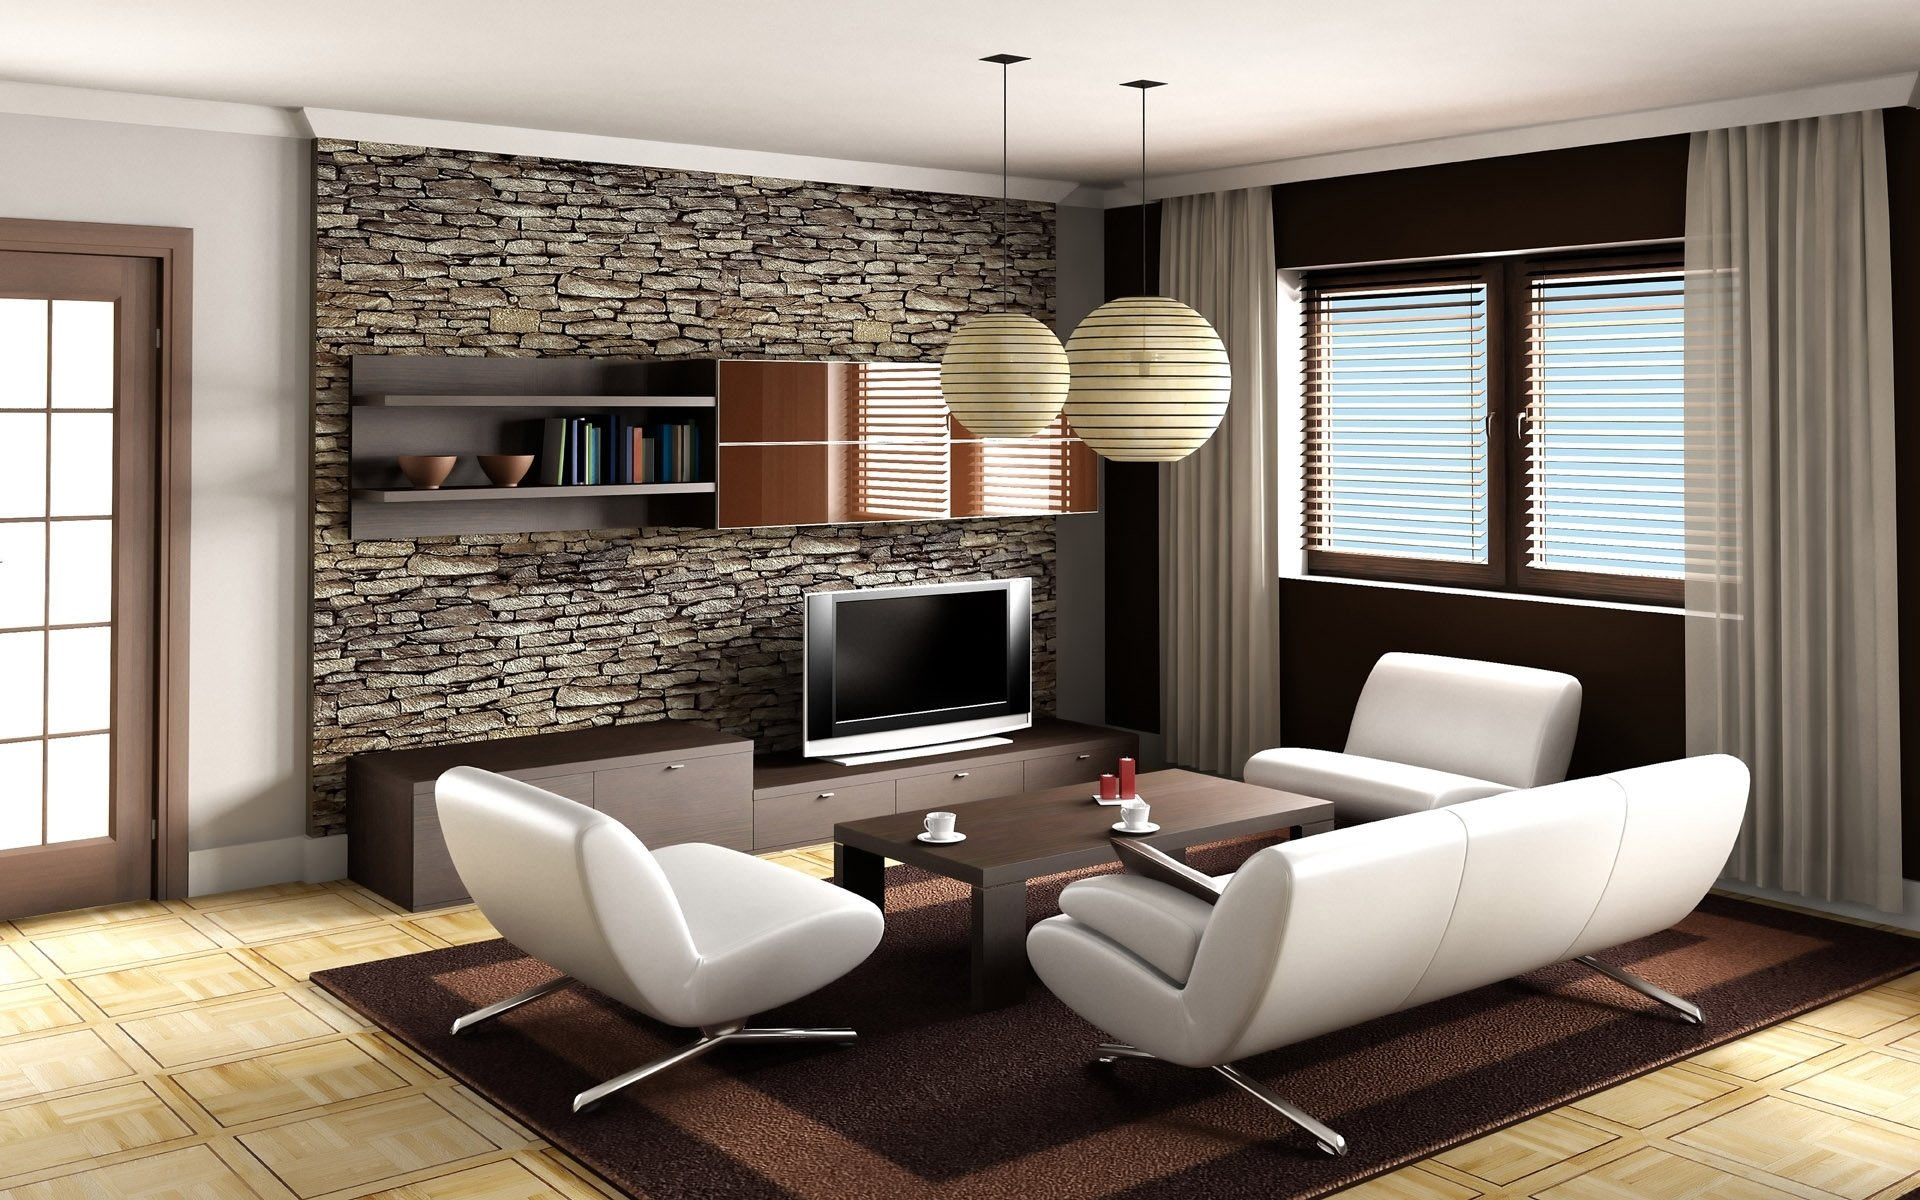 10 Perfect Furniture Ideas For Living Room living room furniture living room furniture ideas living room 2020